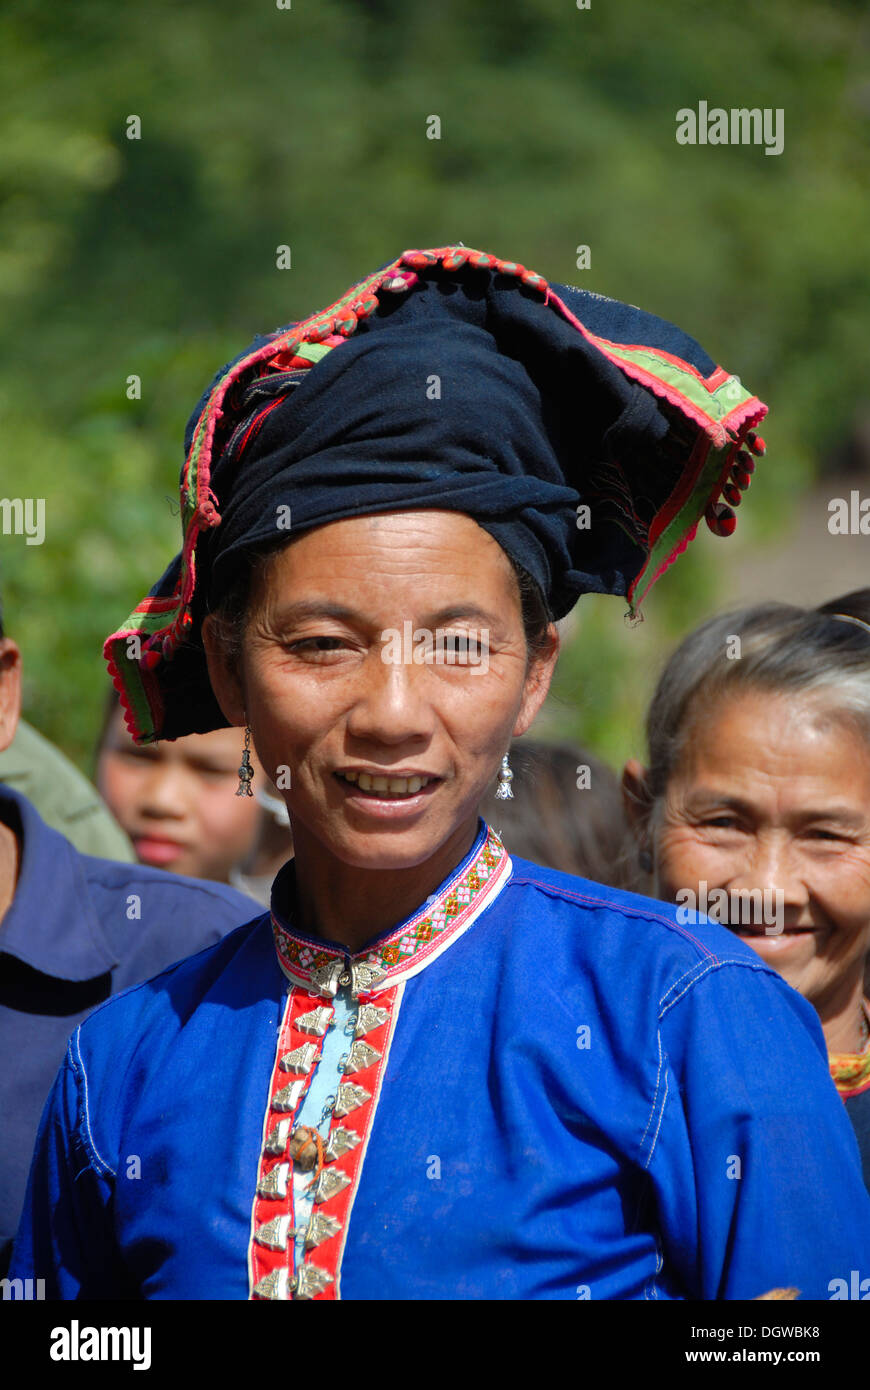 Portrait of a woman of the Tai Dam ethnic group wearing traditional clothing, blue blouse and indigo-coloured headdress - Stock Image